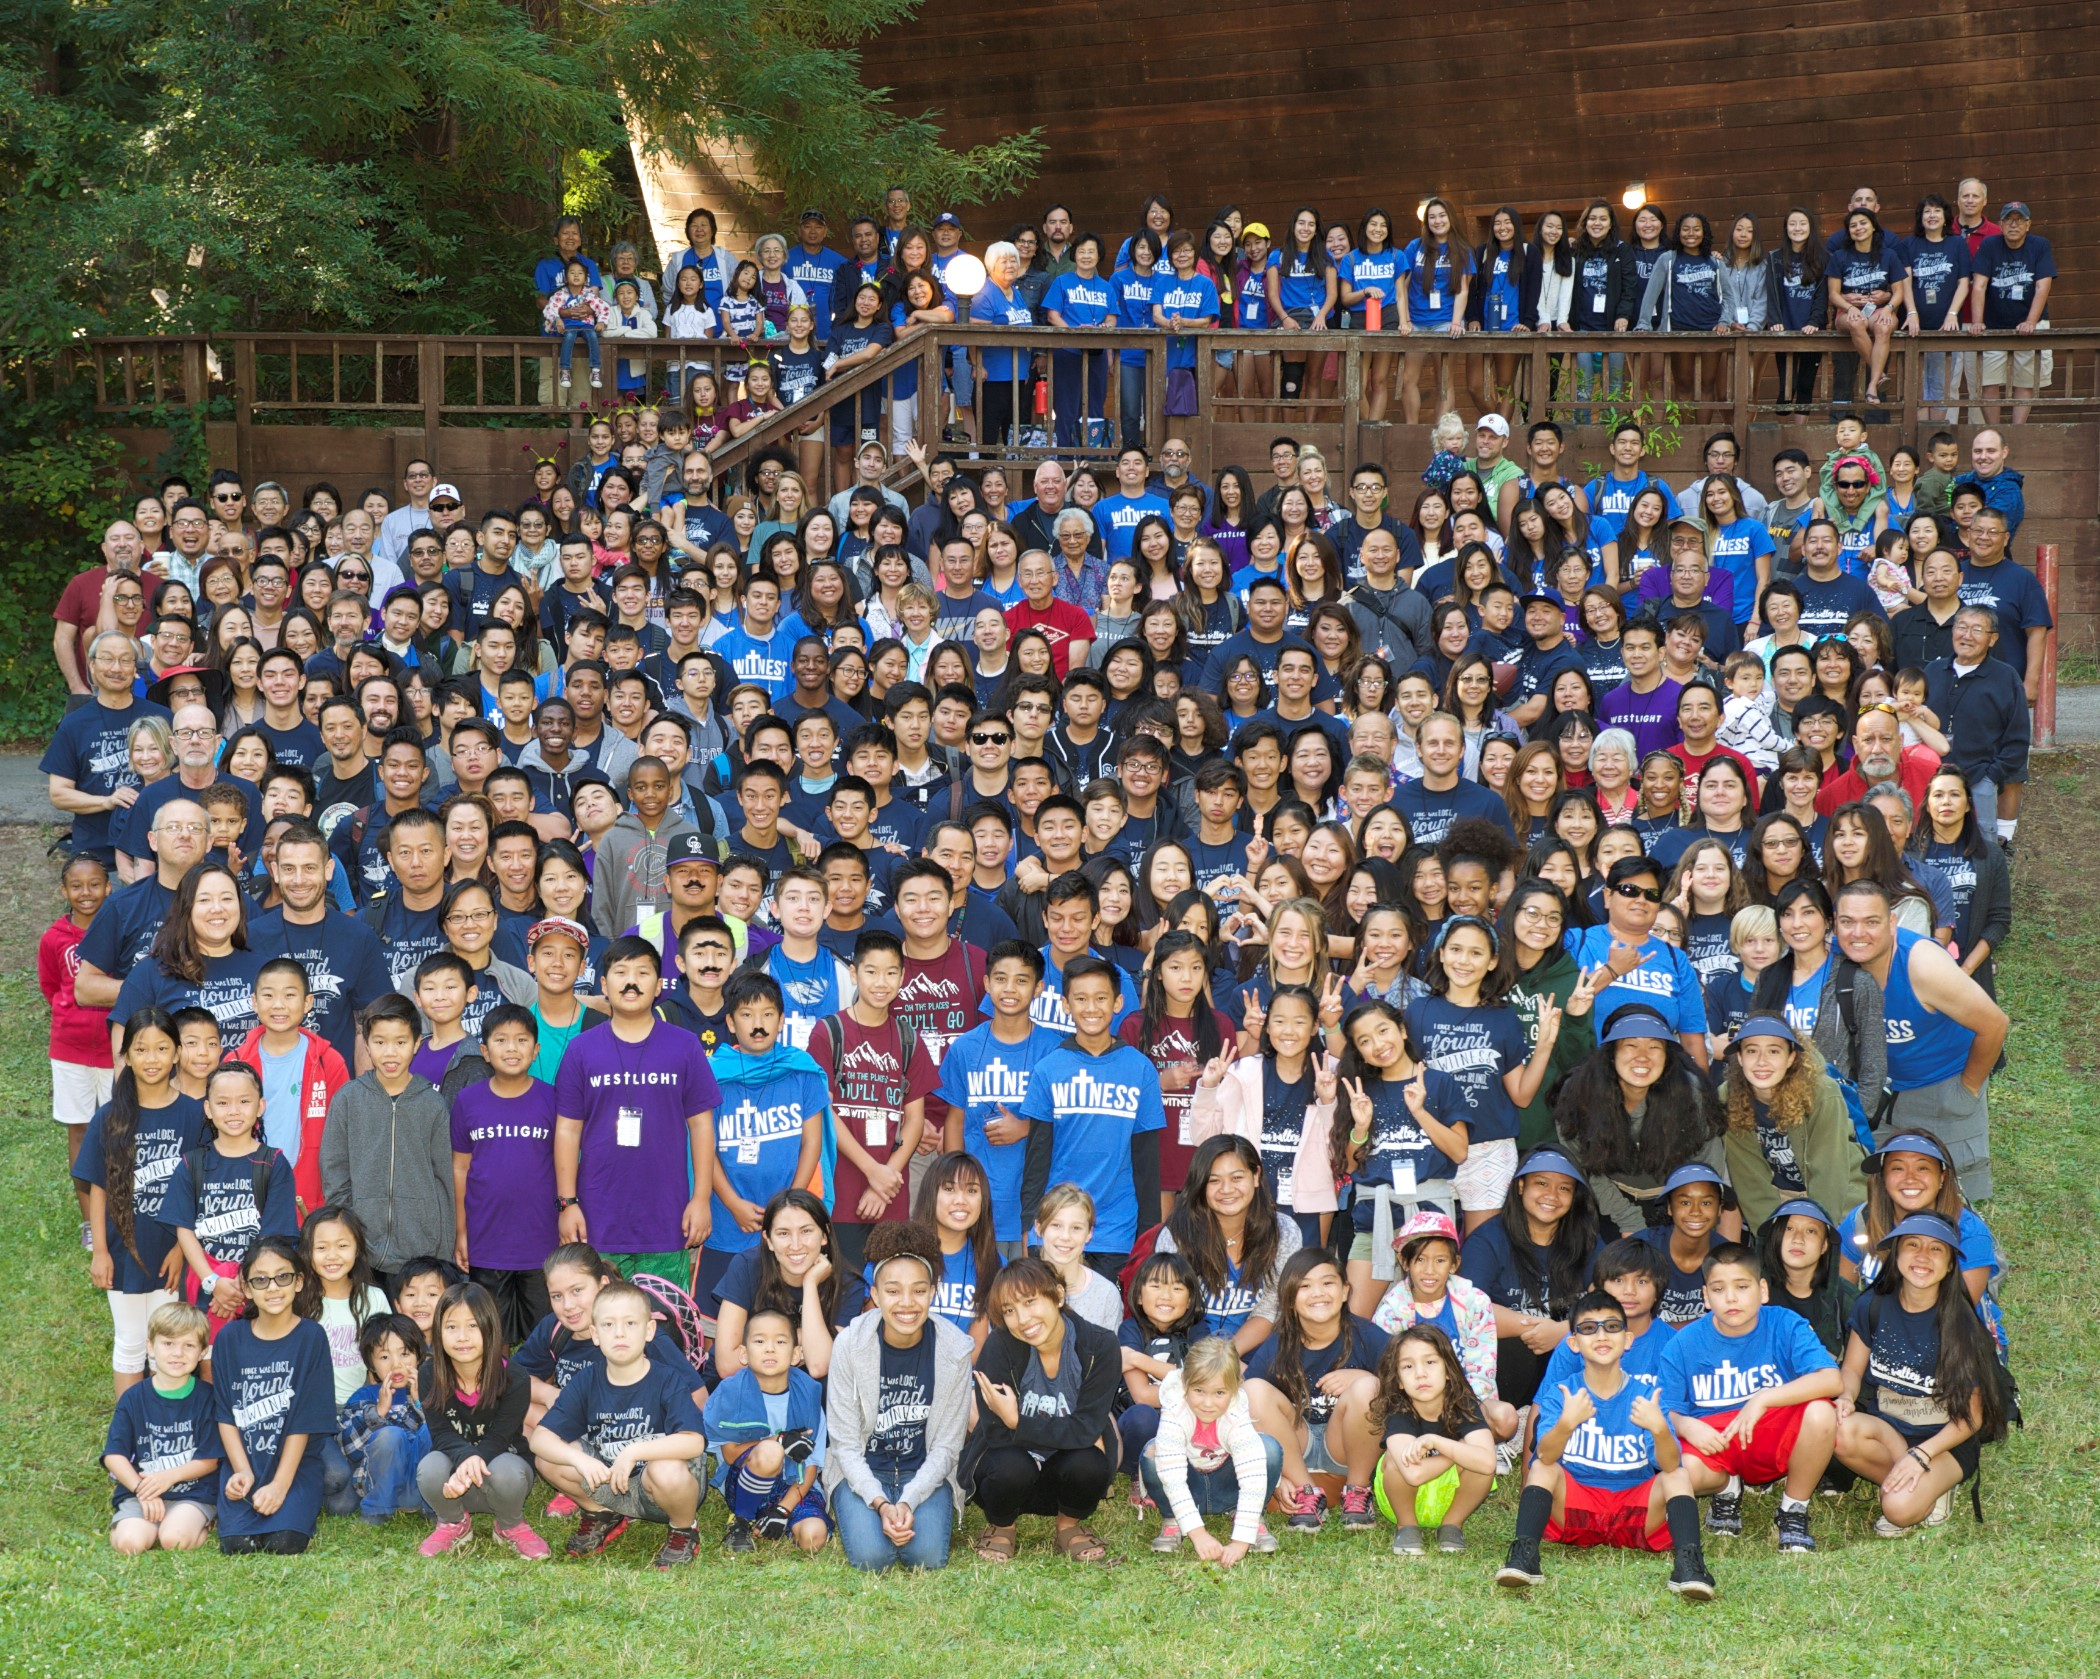 PCJC Family Camp 2016 - July 17 - 22, 2016 - Redwood Christian Park